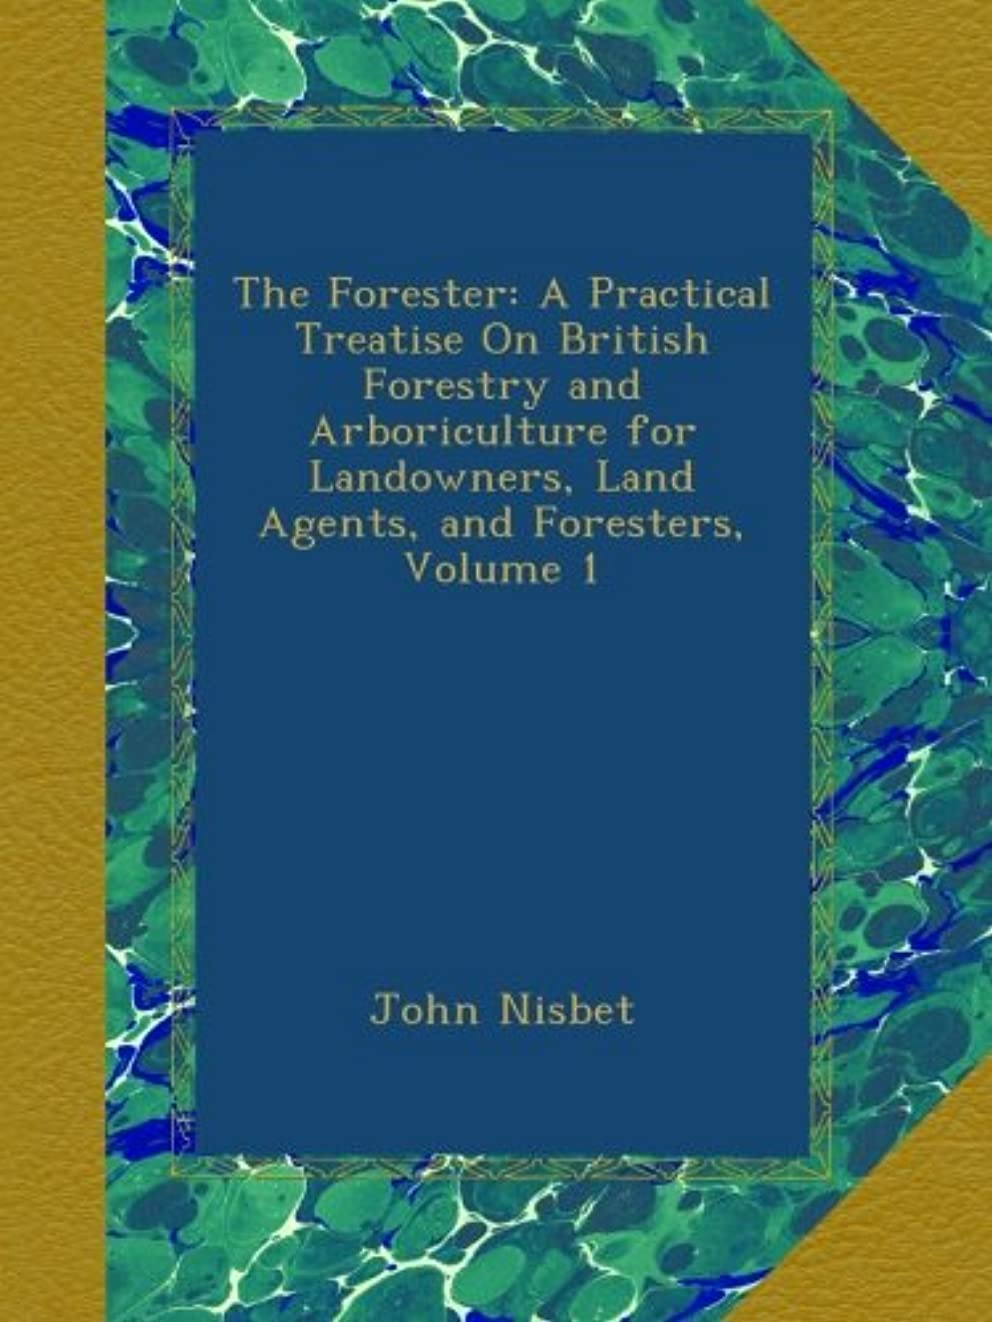 寂しい差別化するシュリンクThe Forester: A Practical Treatise On British Forestry and Arboriculture for Landowners, Land Agents, and Foresters, Volume 1